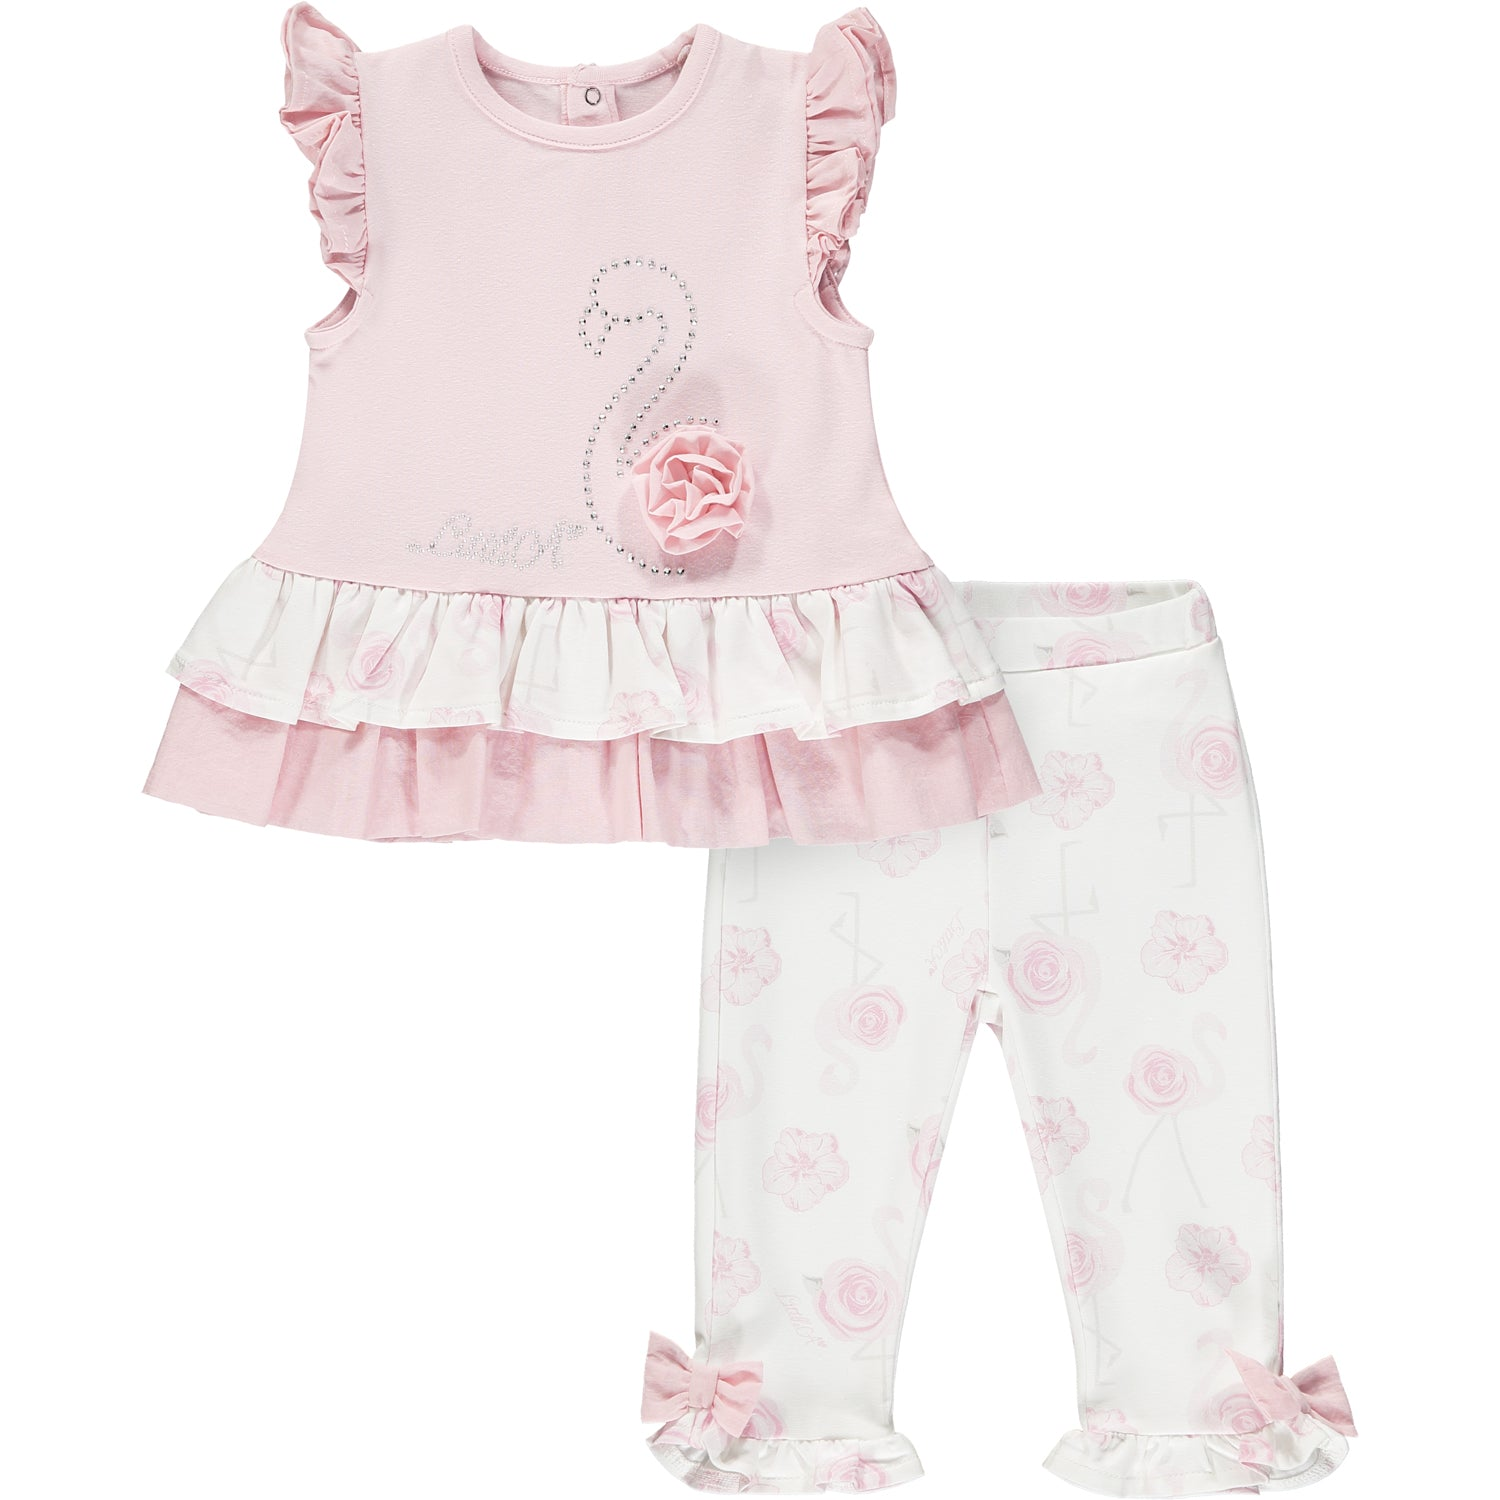 Little A LS21500 Jaffa Baby Pink Flamingo Print Leggings Set